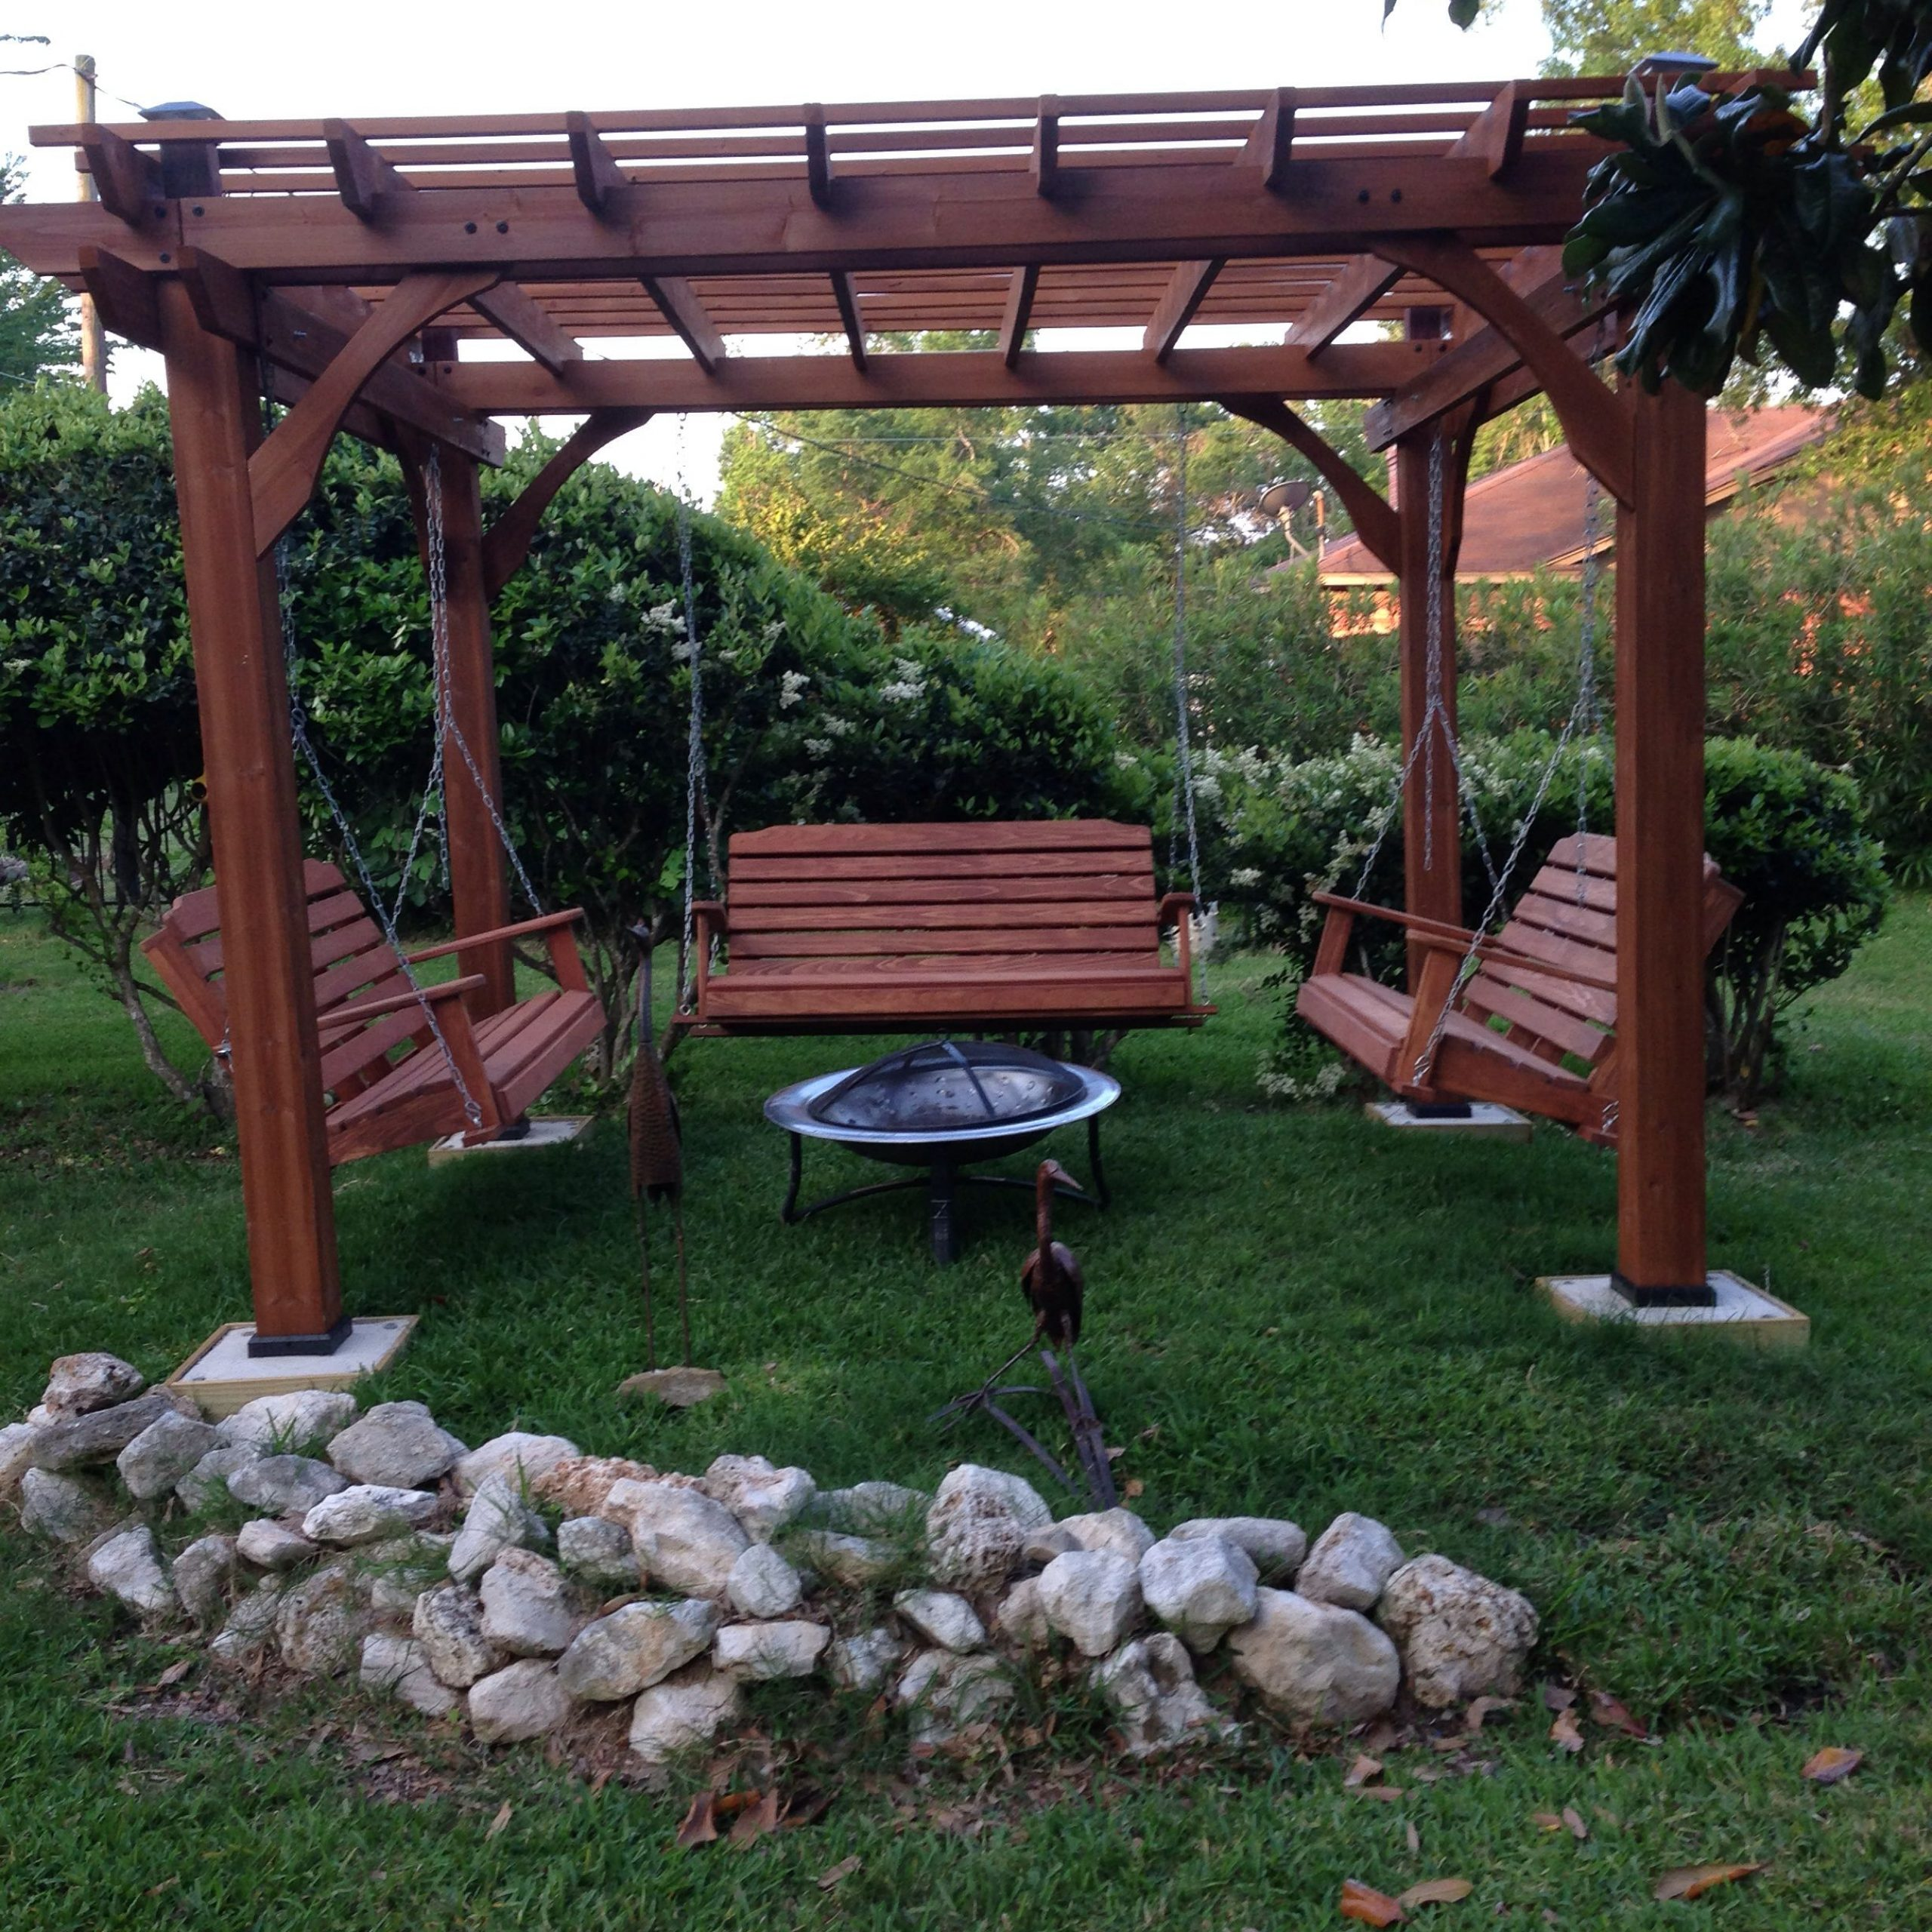 Great Outdoor Area With Pergola, Swings And Fire Pit Within Most Up To Date Patio Gazebo Porch Canopy Swings (View 8 of 25)